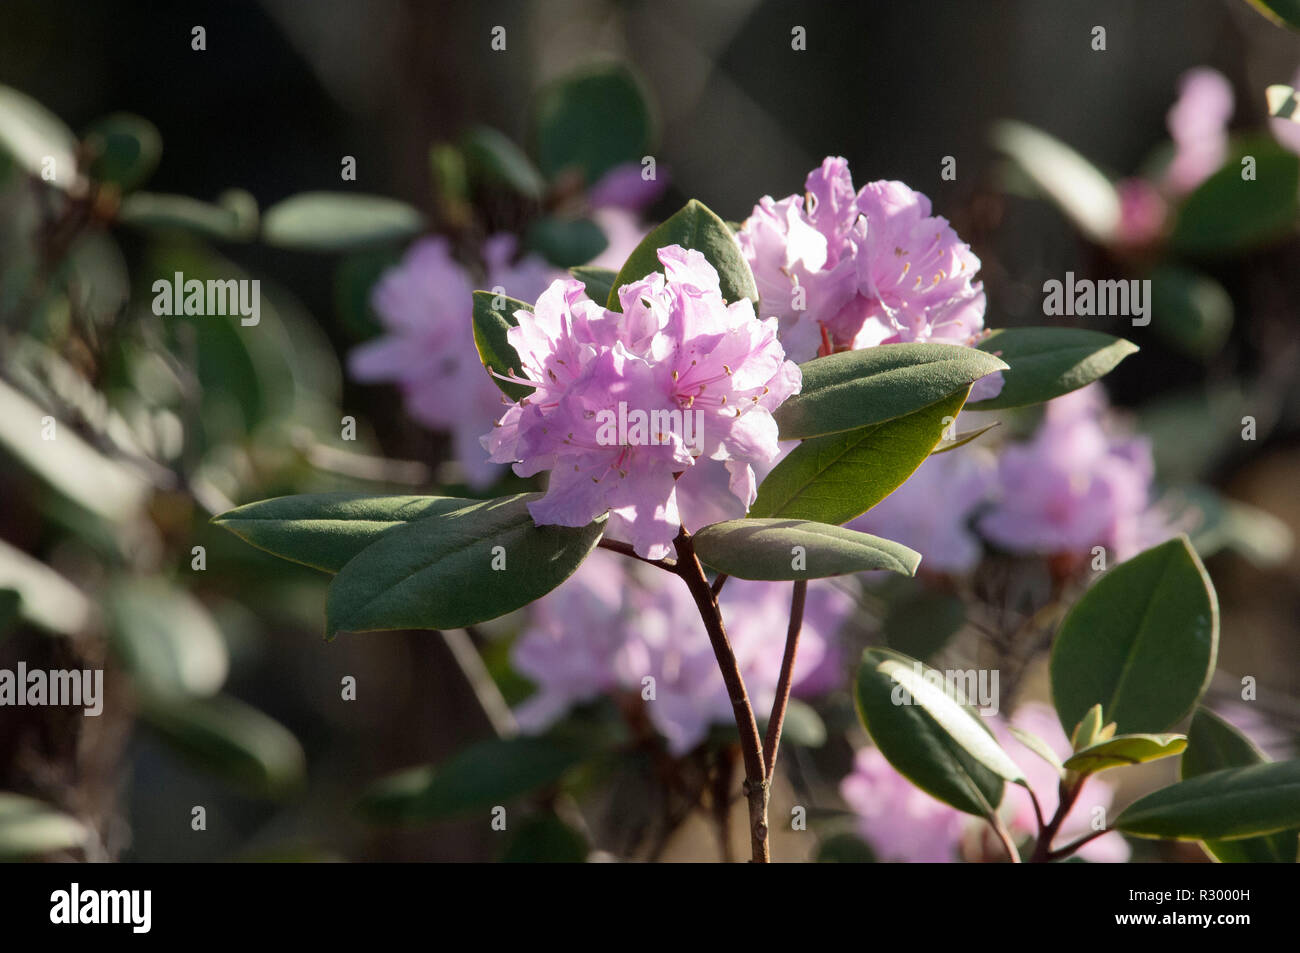 Wild rhododendron flowering in Cumberland Gap. Digital photograph - Stock Image